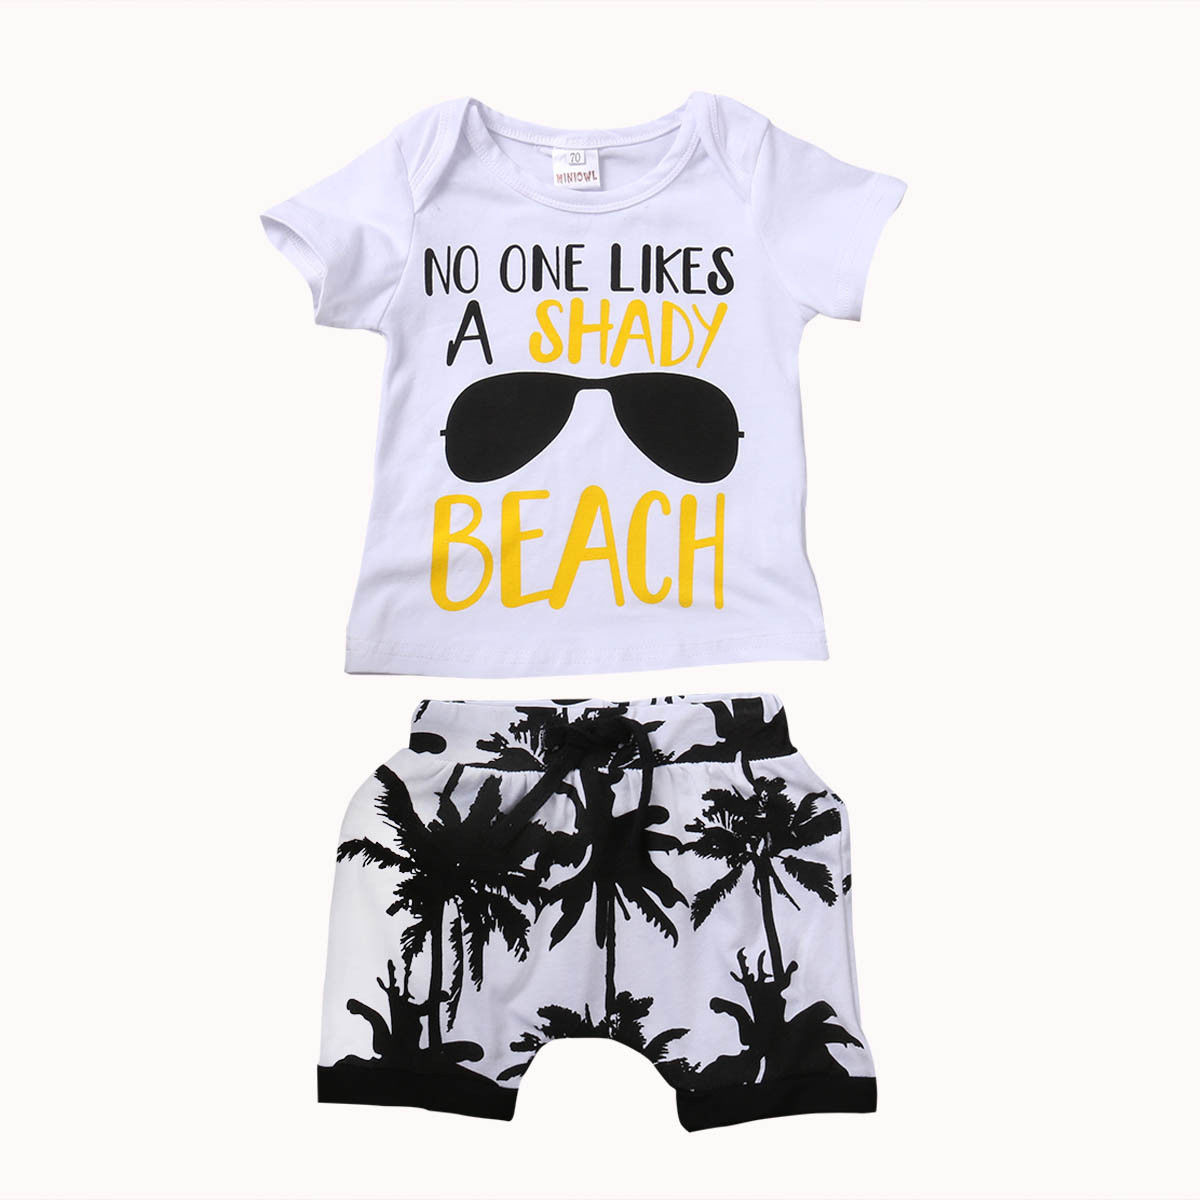 Toddler Newborn Baby Boy Clothes Set Letter Outfit Boys Short Sleeve T-shirt Tops Pants Shorts Children Clothing 0-3T 2Pcs infant baby boy girl 2pcs clothes set kids short sleeve you serious clark letters romper tops car print pants 2pcs outfit set